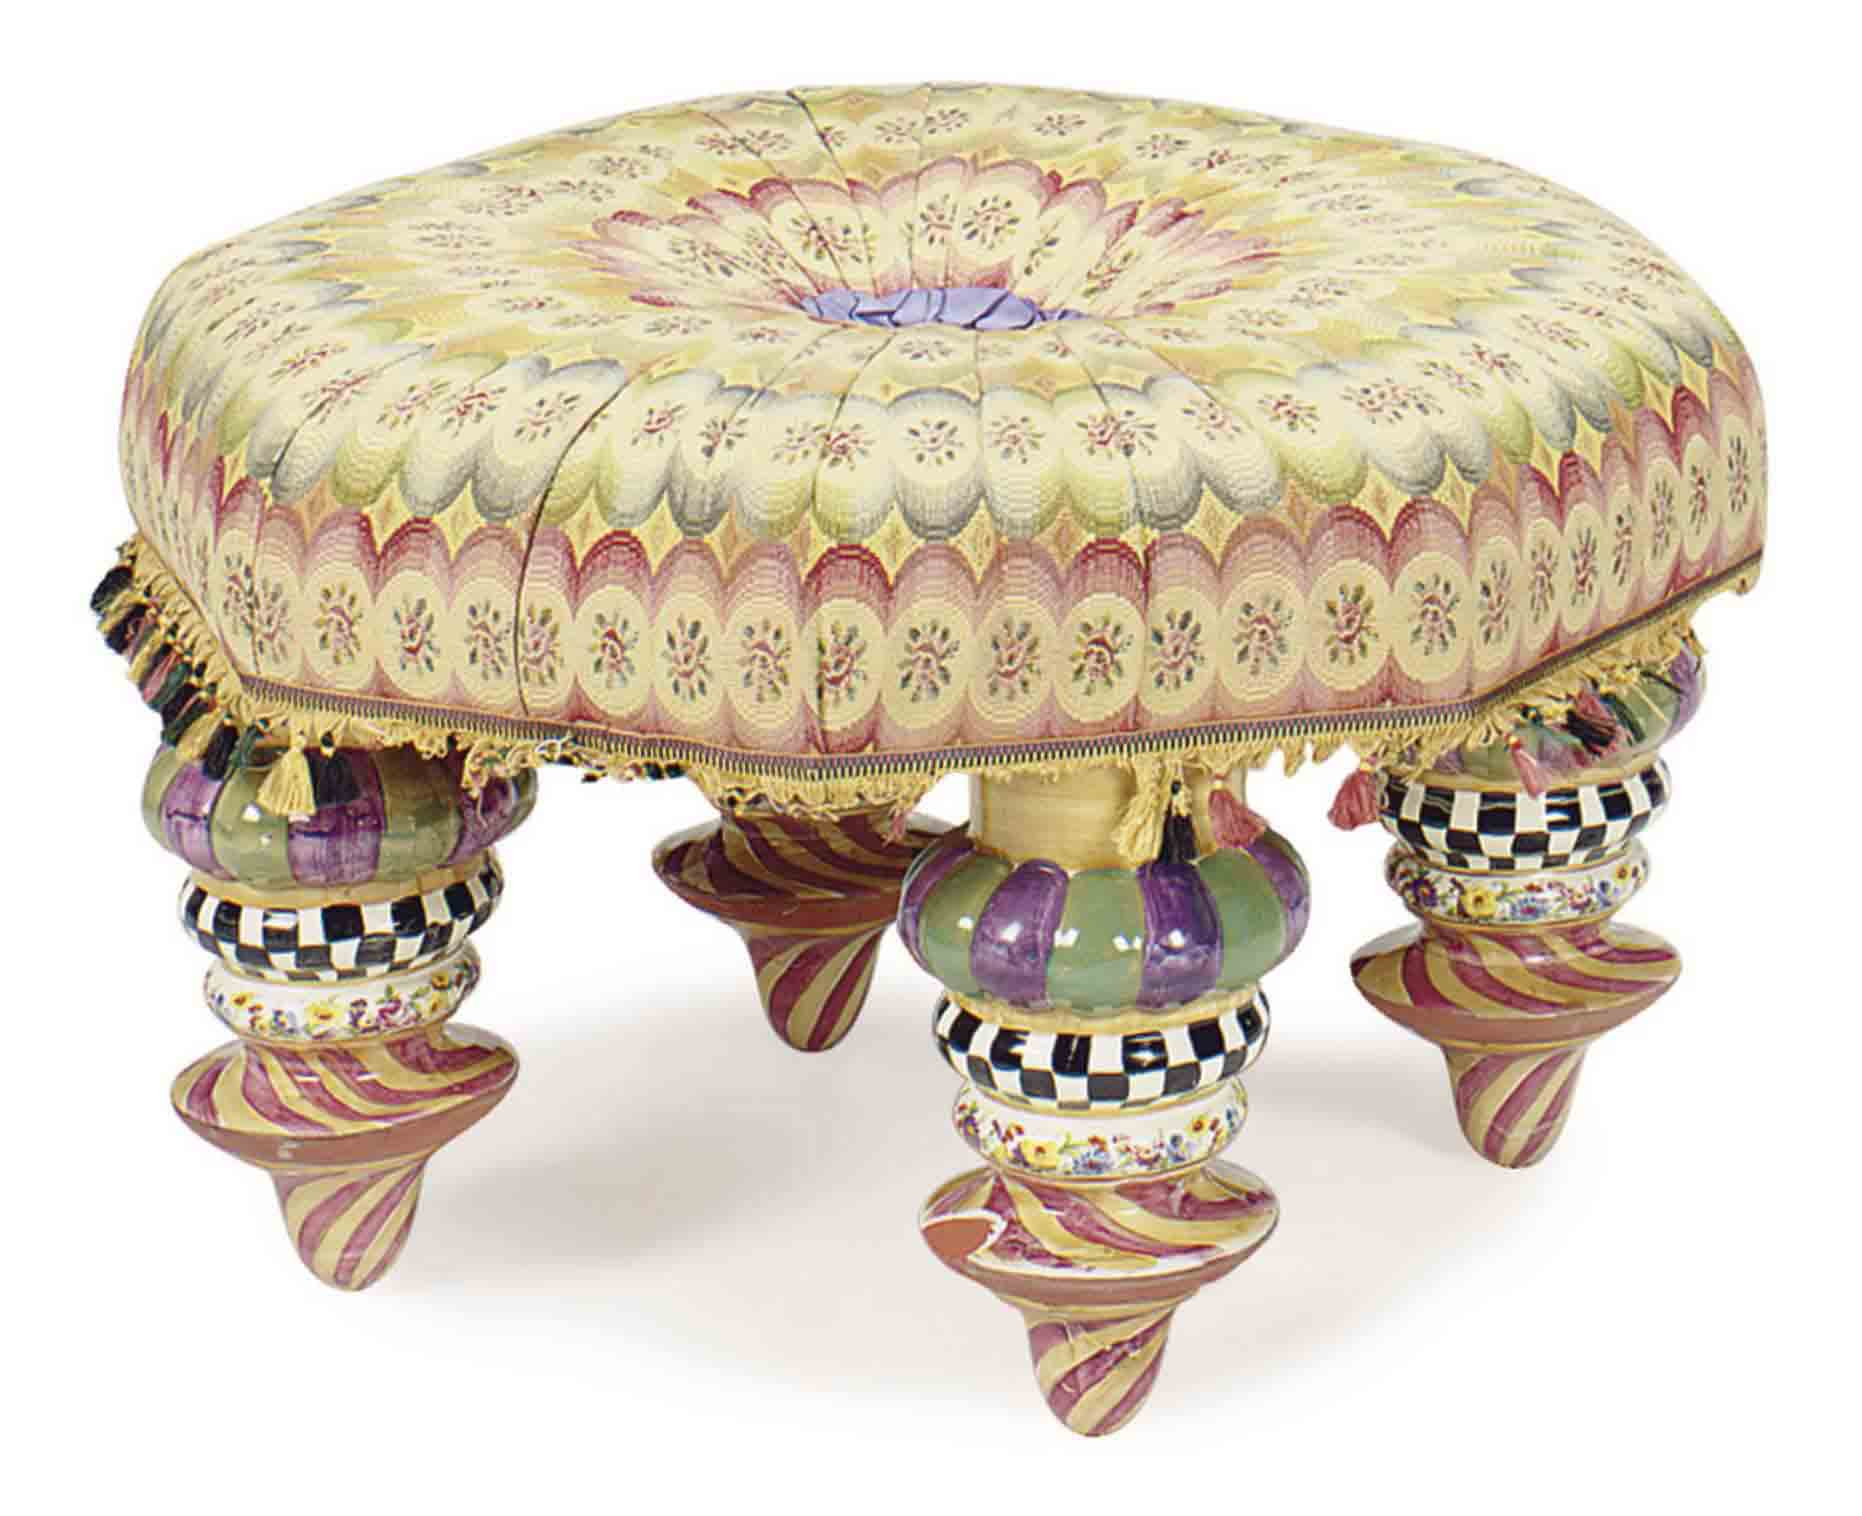 A CONTEMPORARY GLAZED CERAMIC UPHOLSTERED OCTAGONAL OTTOMAN,